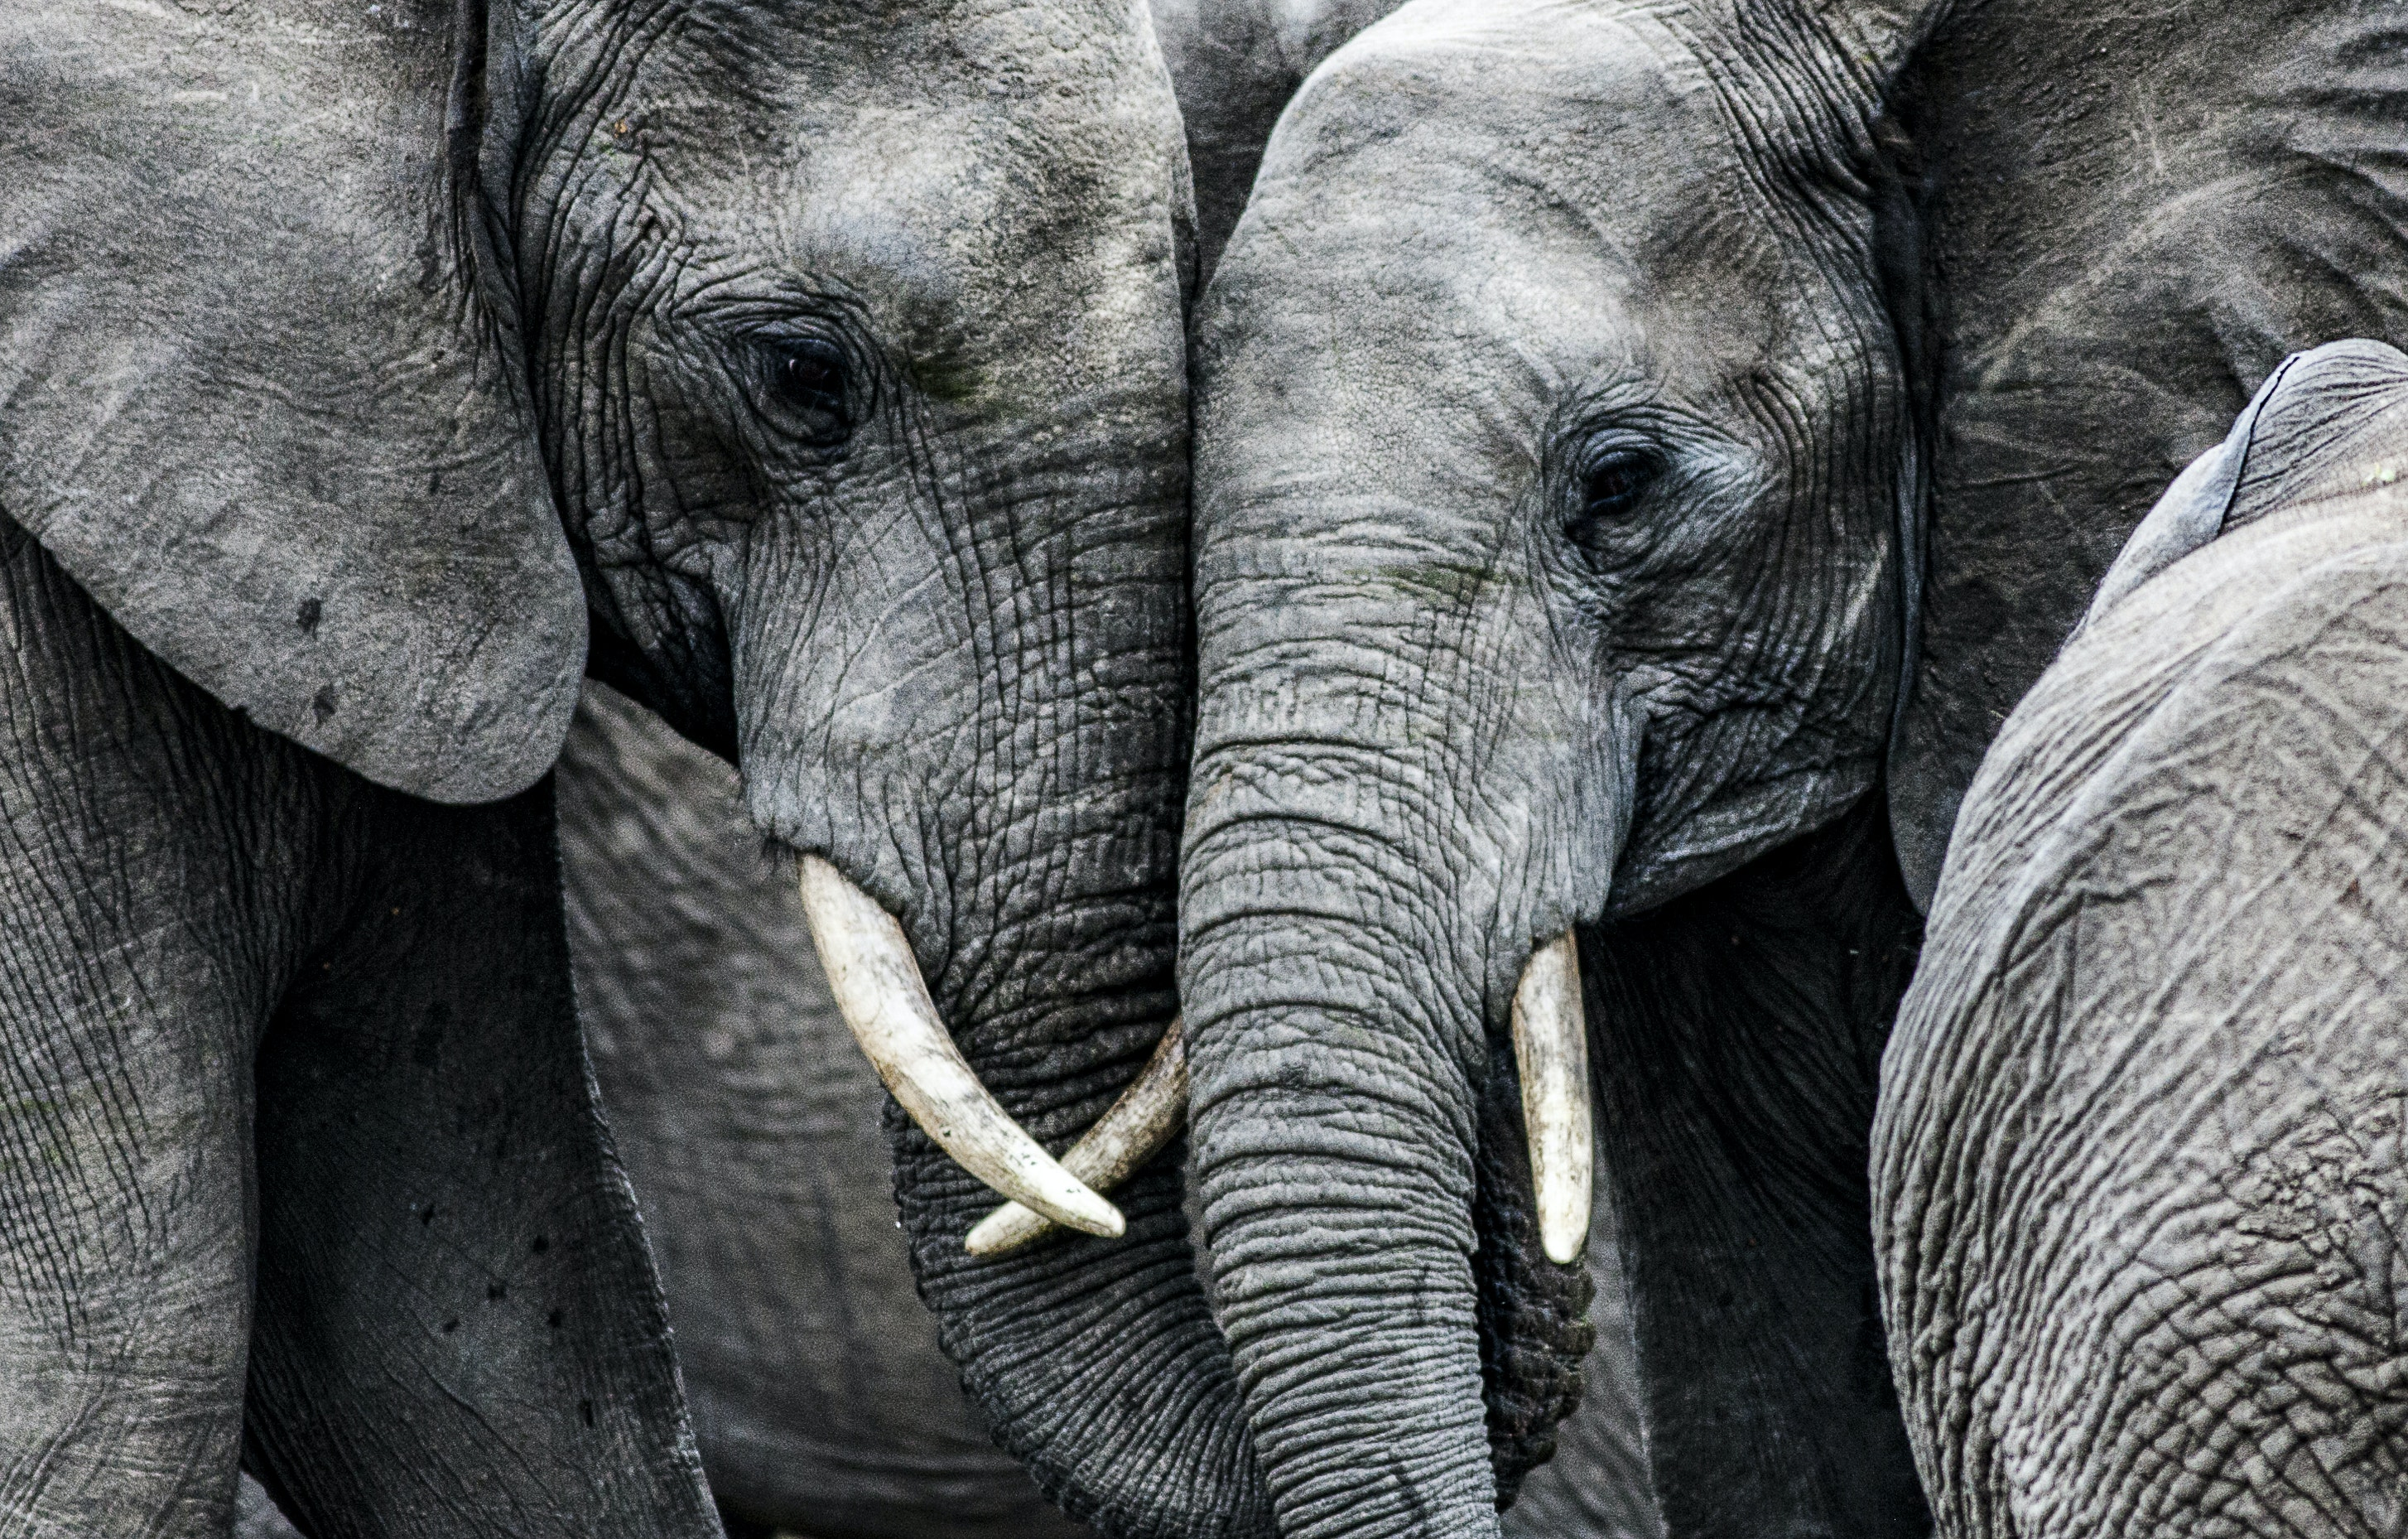 African elephants in literature -- lessons in exploitation and compassion